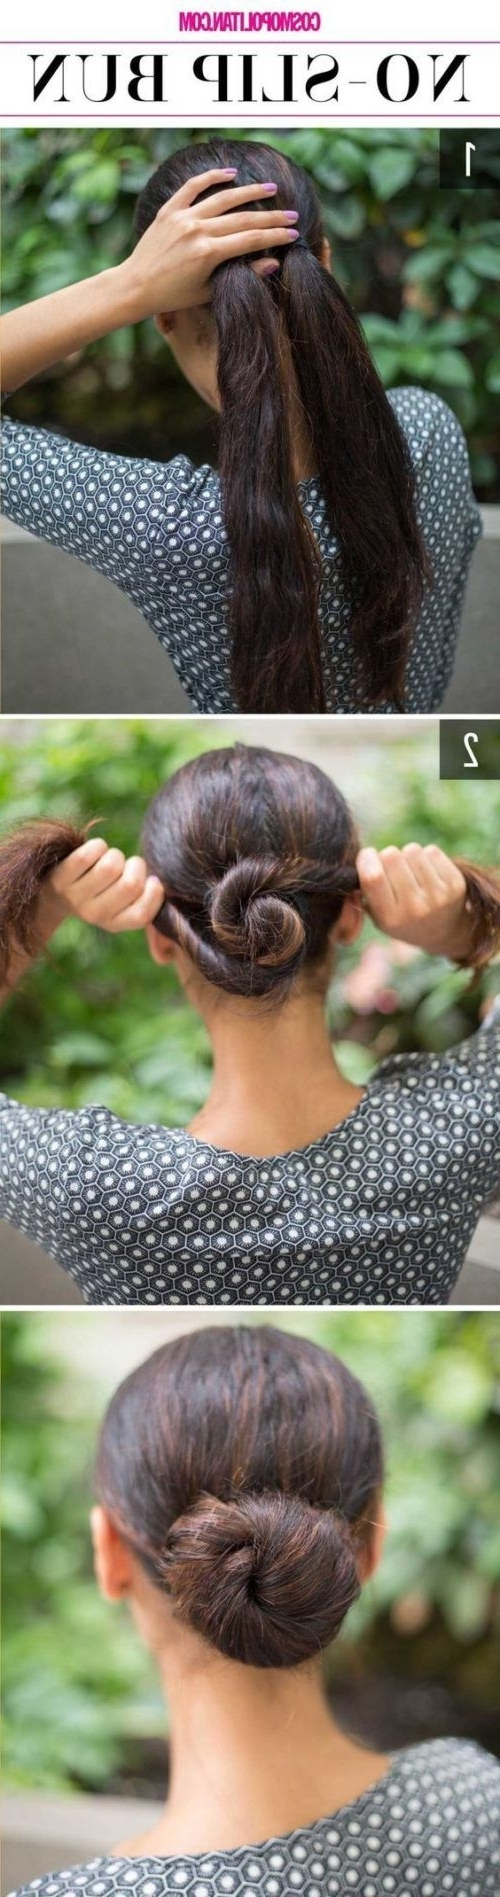 20 Best Office Hairstyles That Suit Indian Workplace 30+ Adorable Indian Office Hairstyles For Medium Hair